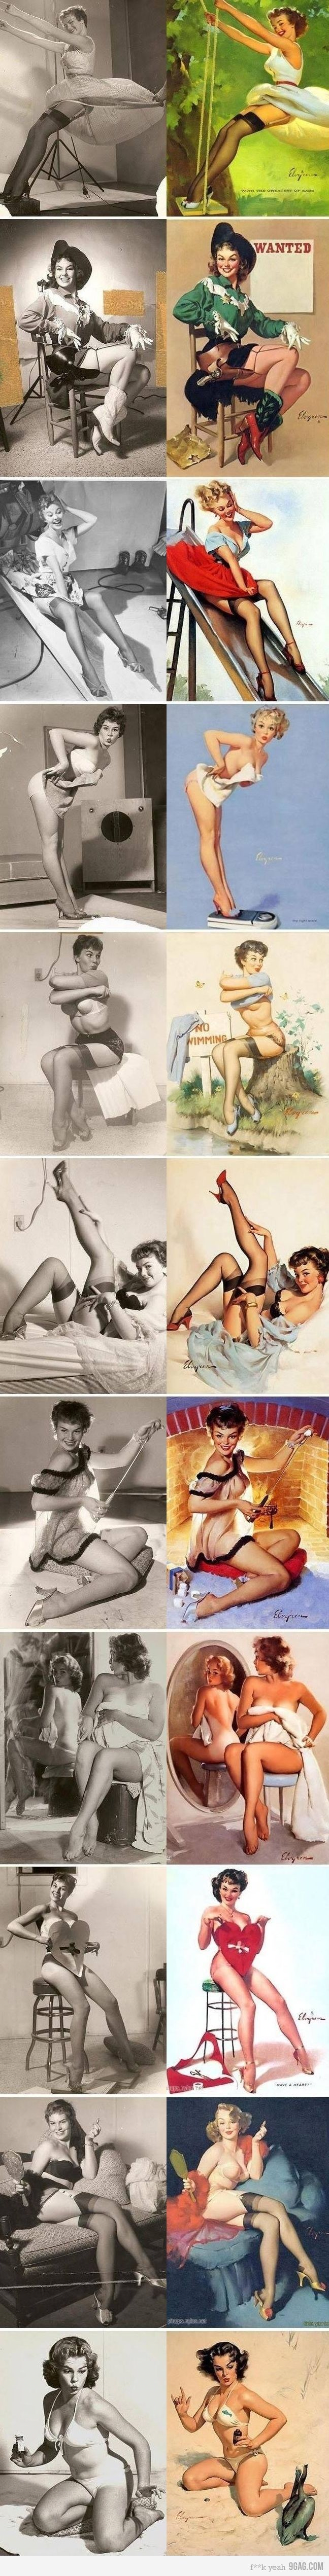 Photos to Illustrations for Gil Elvgren Pinups ★ Find more at http://www.pinterest.com/competing/